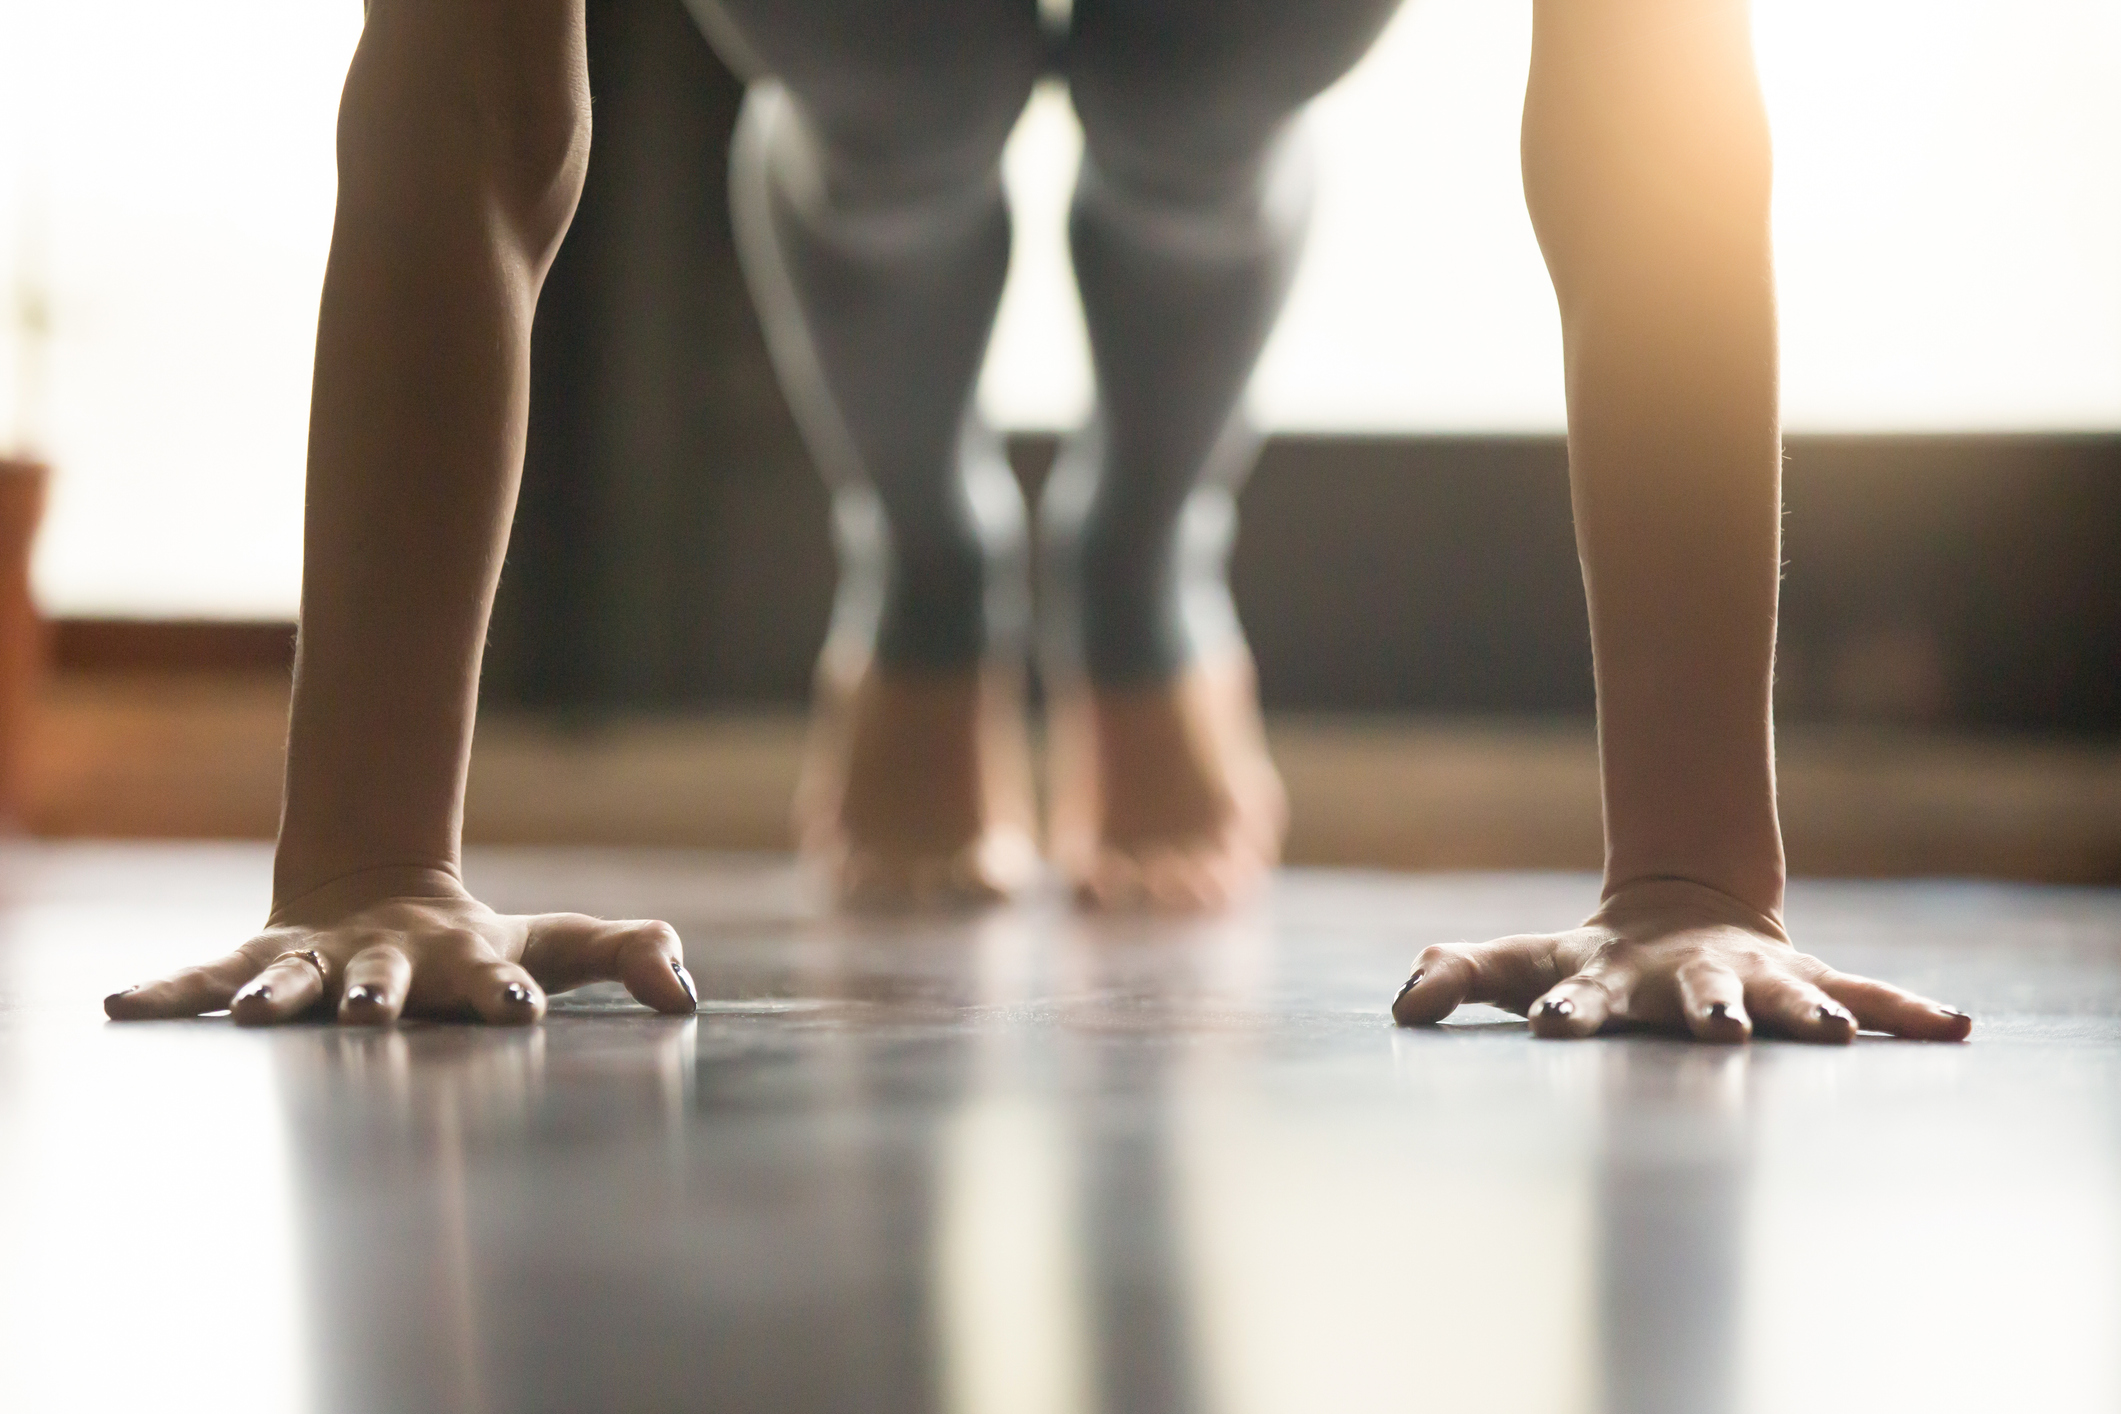 Dynamic Yoga - Tuesdays @ 9:30am & Thursdays @ 10:35am, with Natalie.Suitable for intermediate- advanced practitioners.